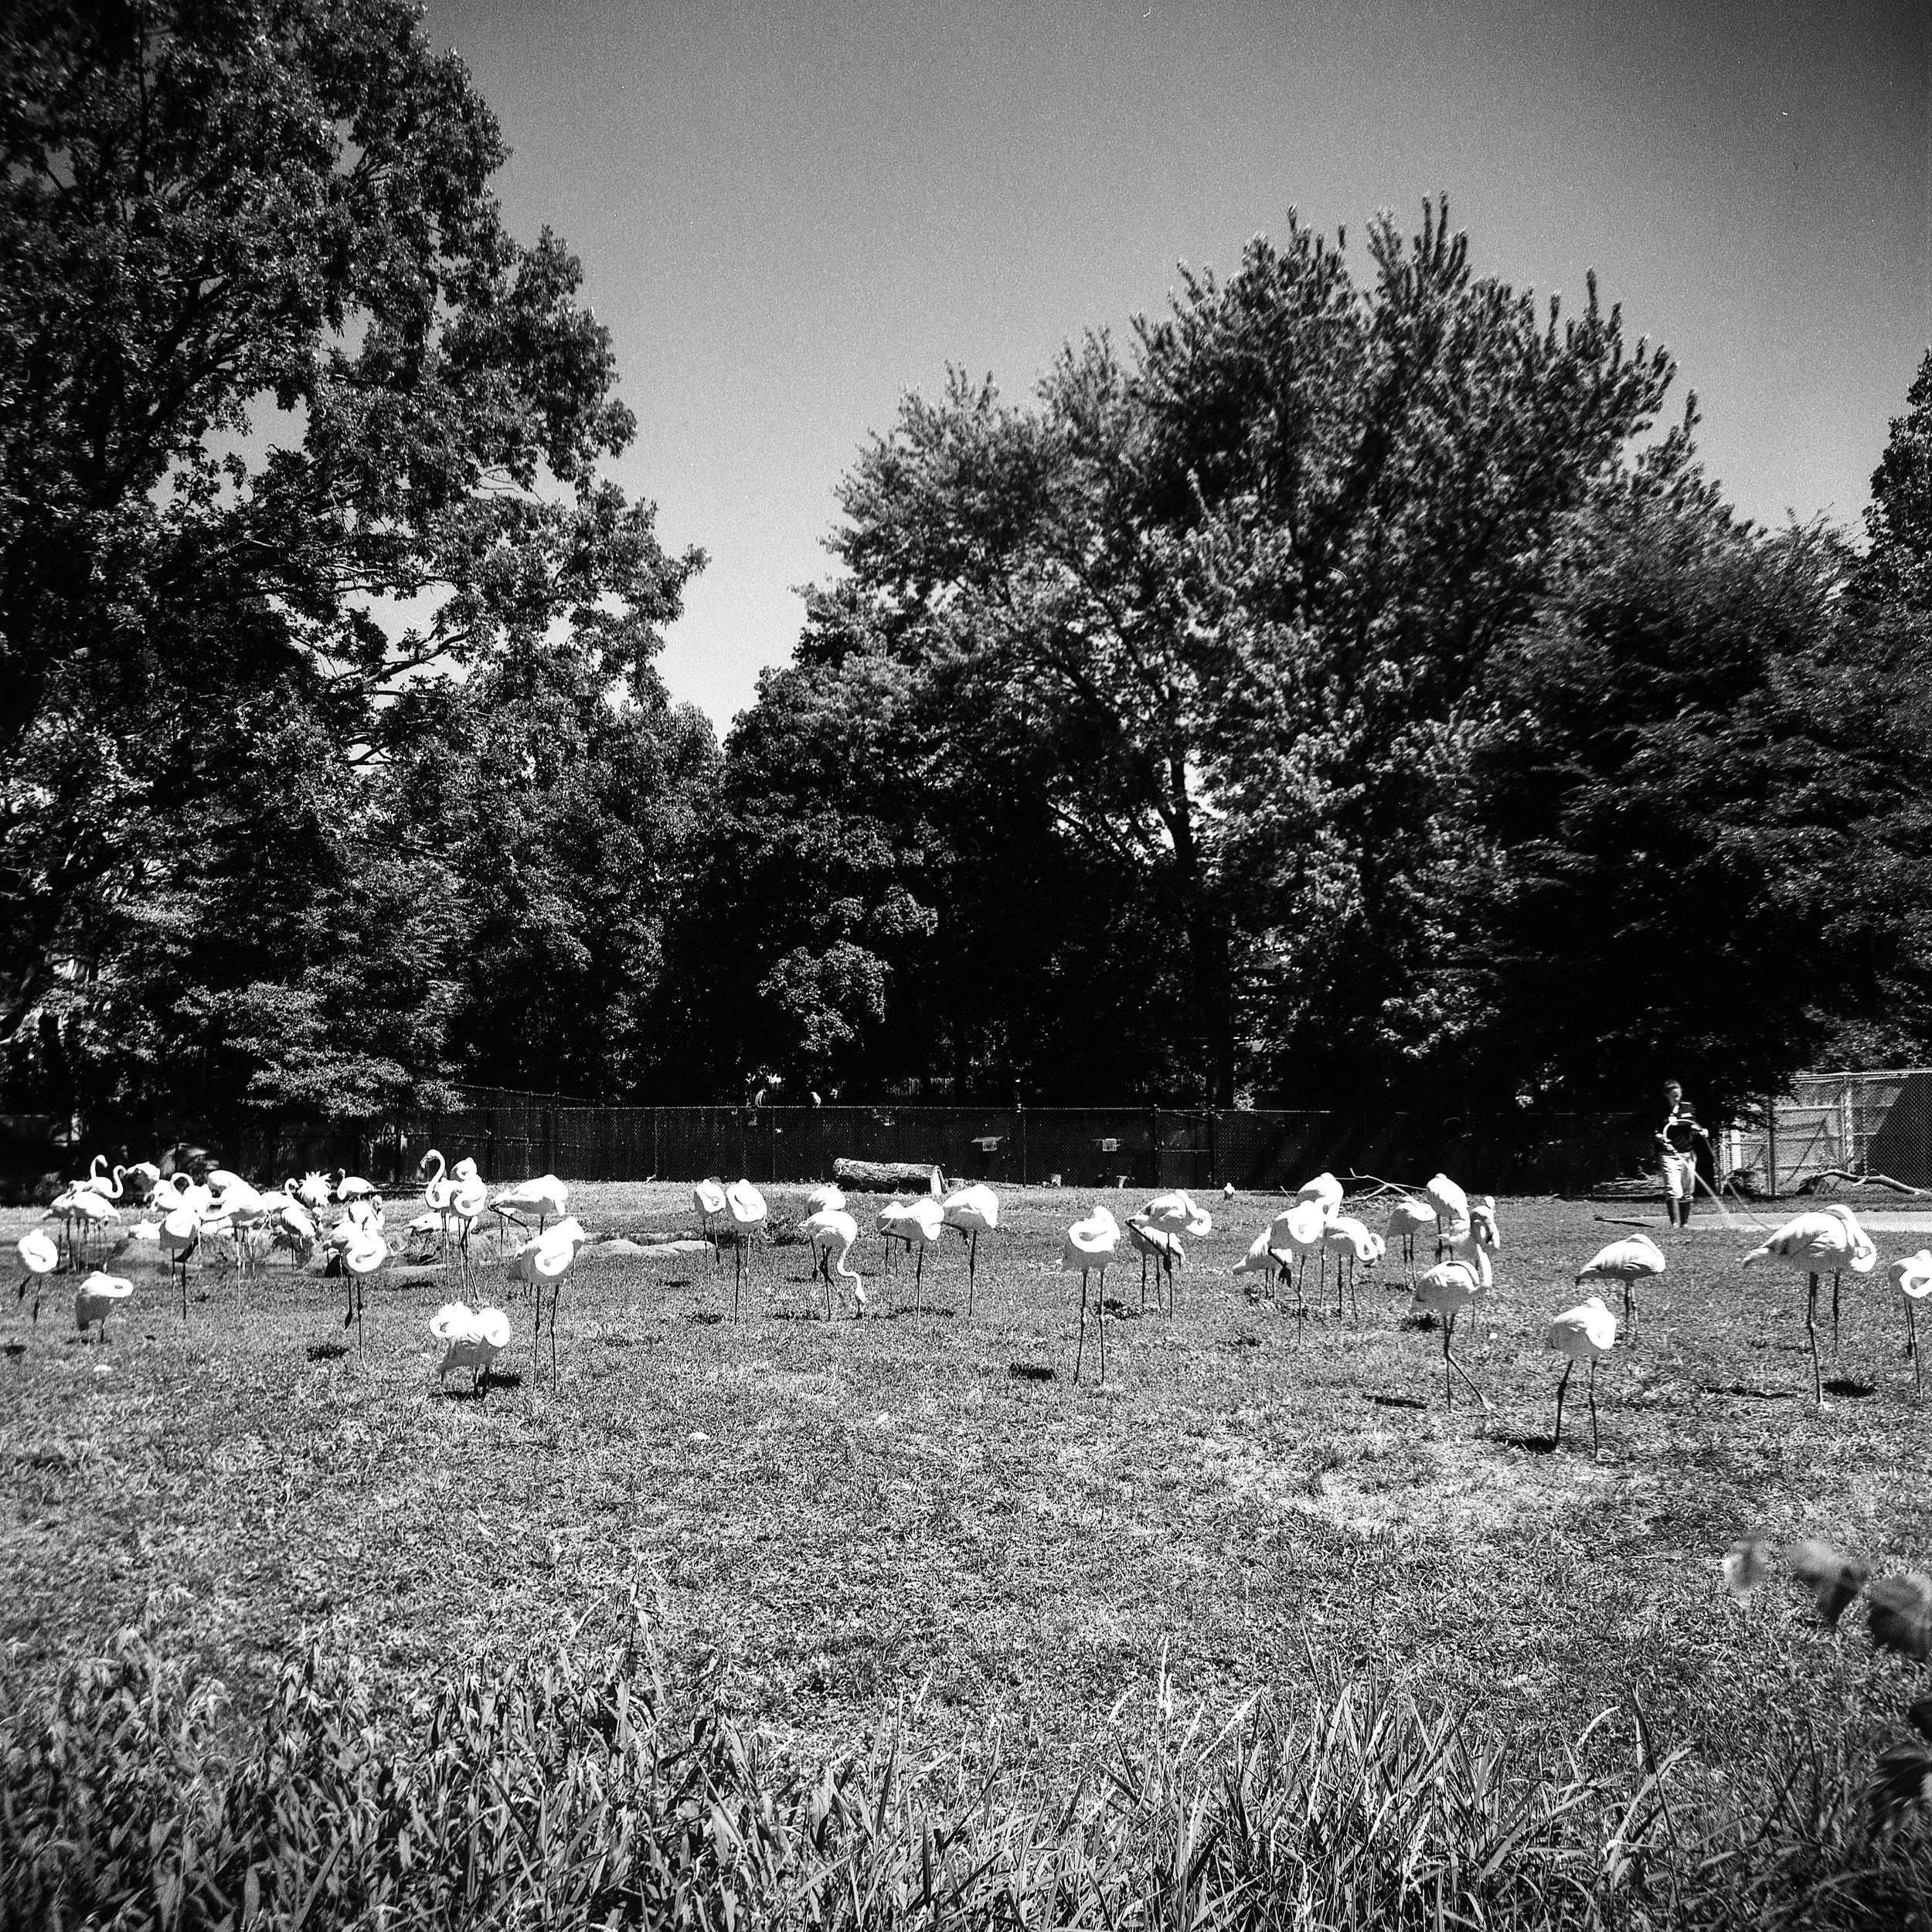 1956 Kodak Duaflex IV Photo Medium Format 620 Film Zoe Kissel Photo detroit zoo